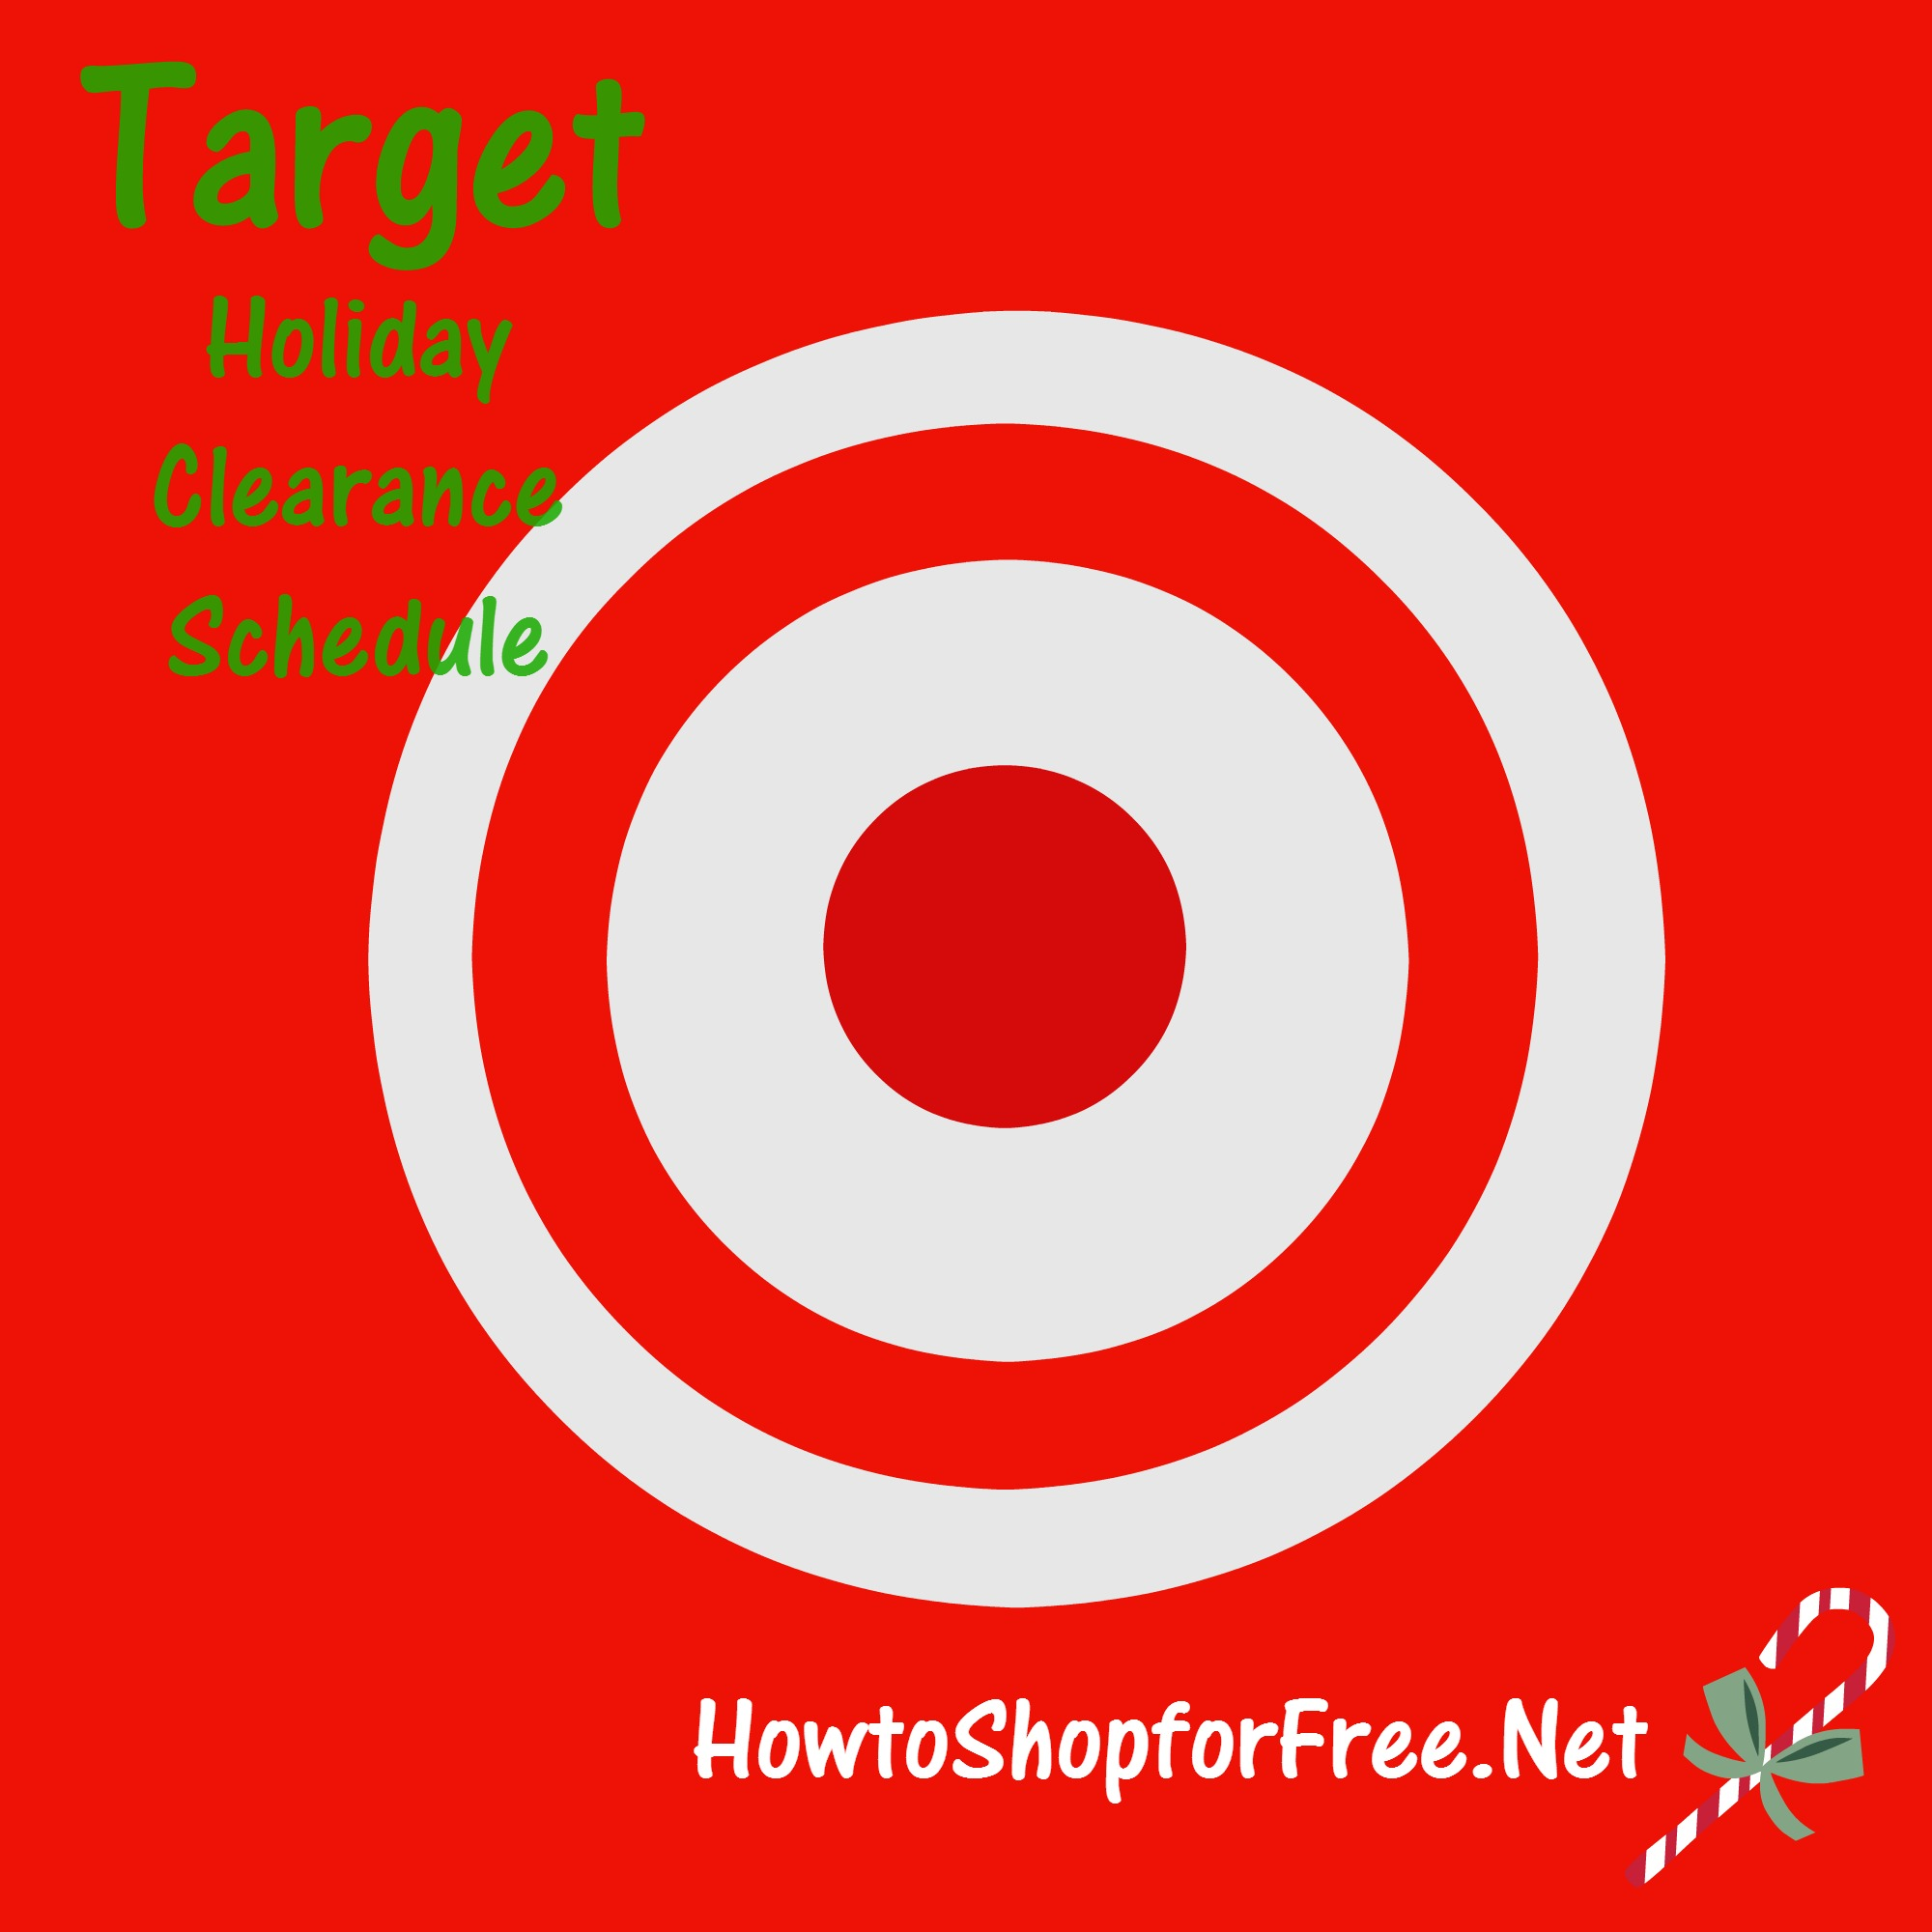 Target Holiday Clearance Schedule | How to Shop For Free with ...